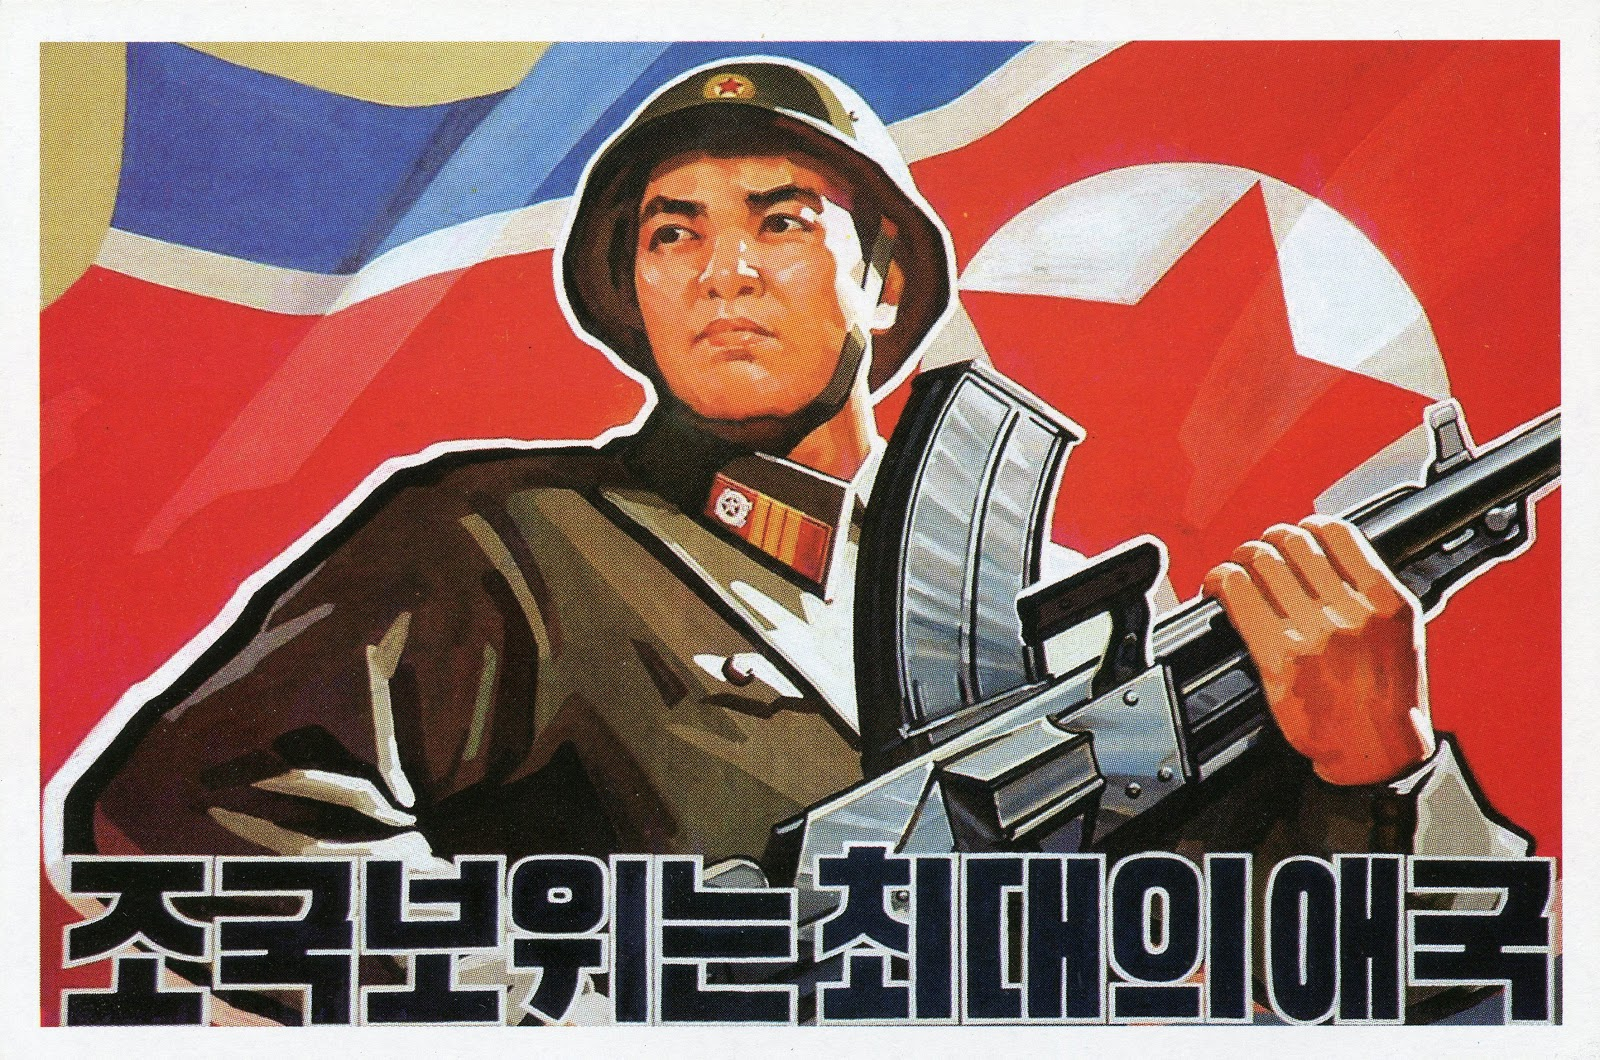 2010-Postcard-from-the-DRPK-North-Korea-